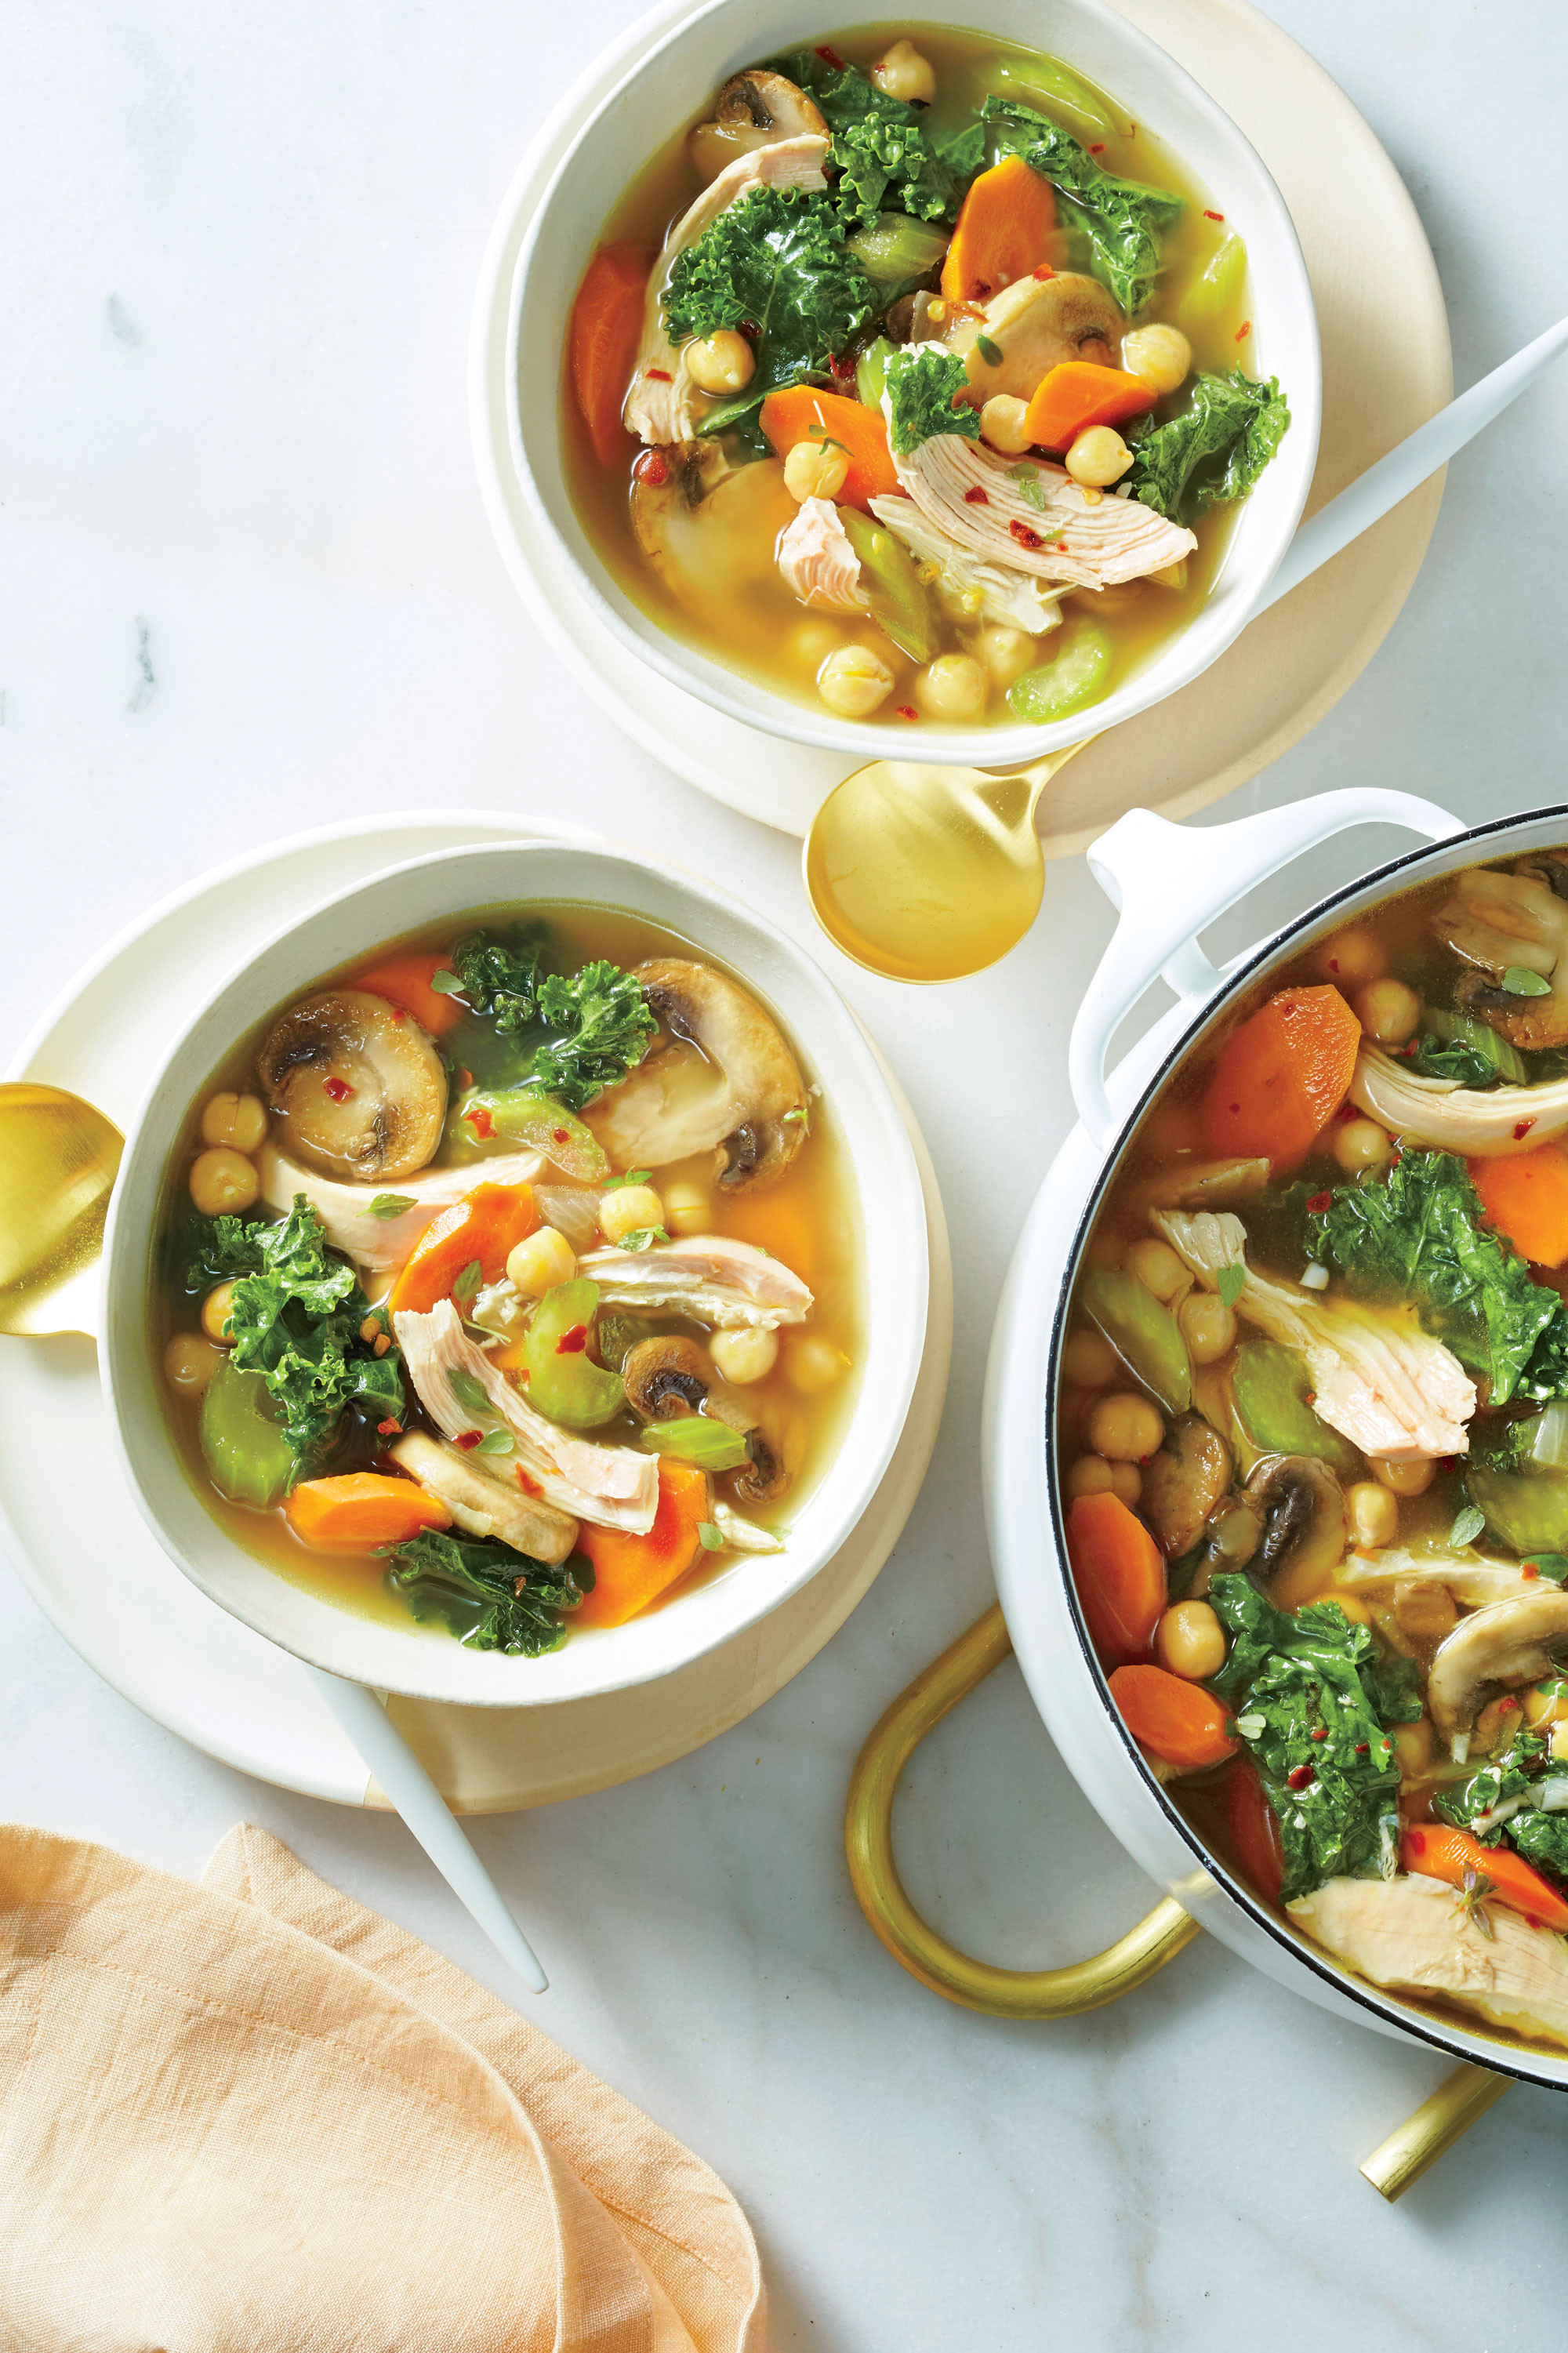 Easy Healthy Soups  100 Healthy Soup Recipes Cooking Light